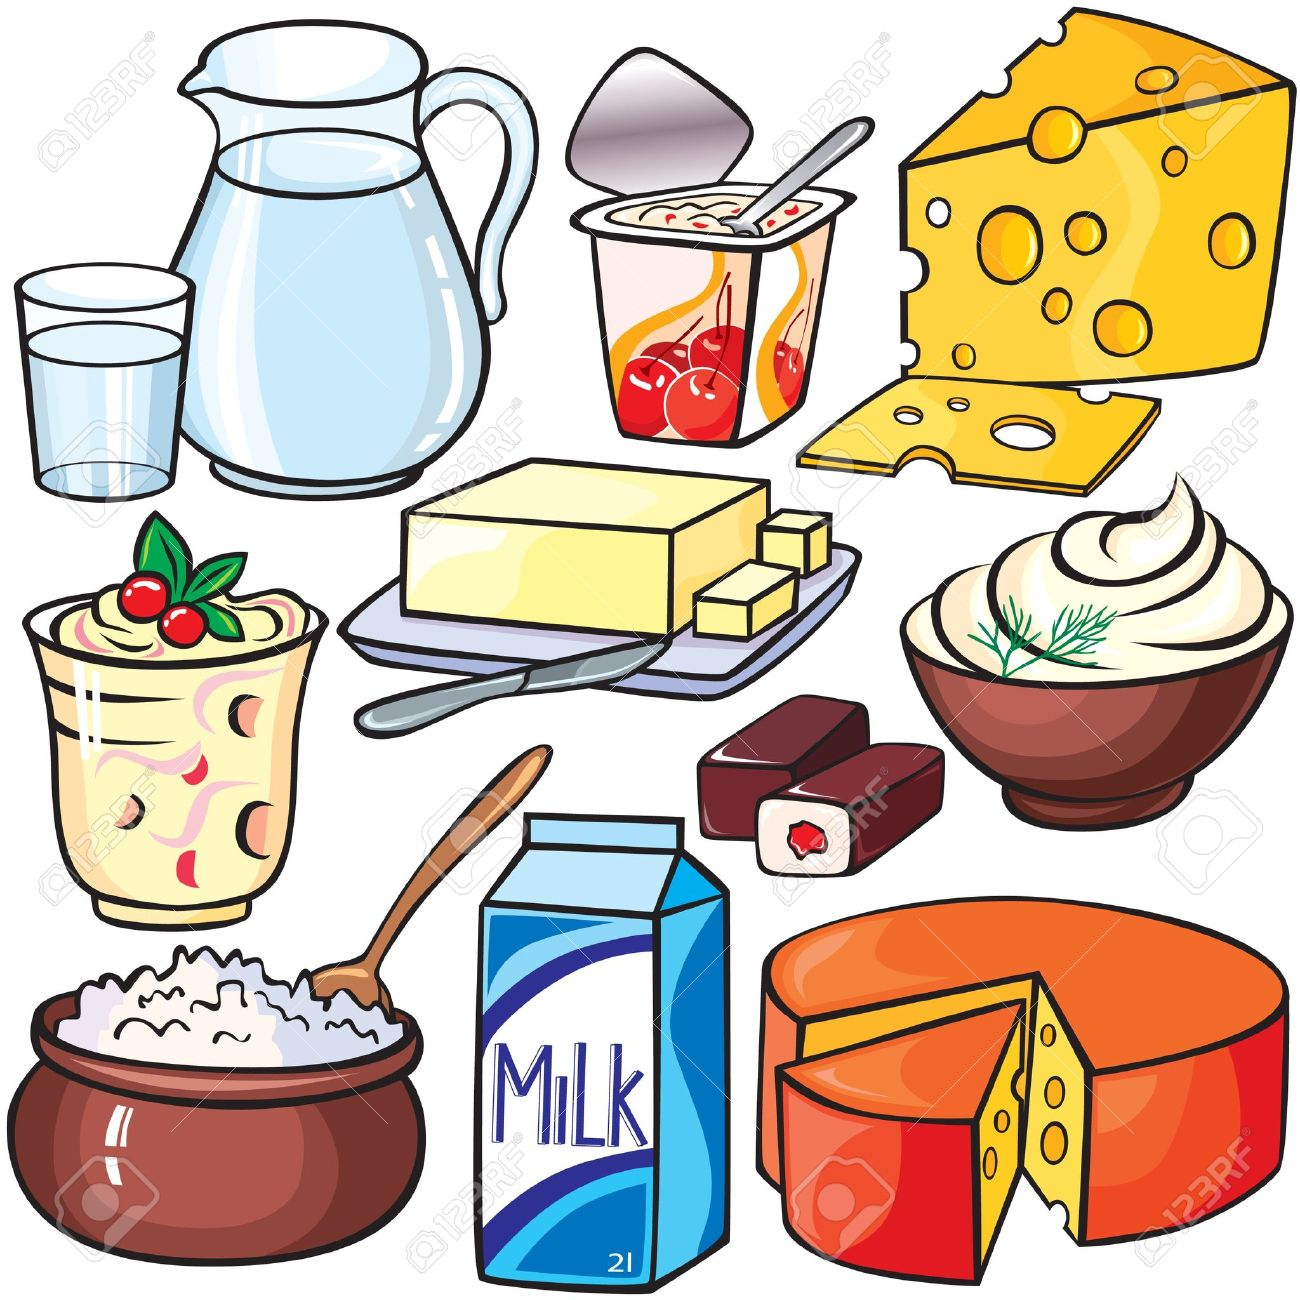 Dairy clipart.  collection of milk